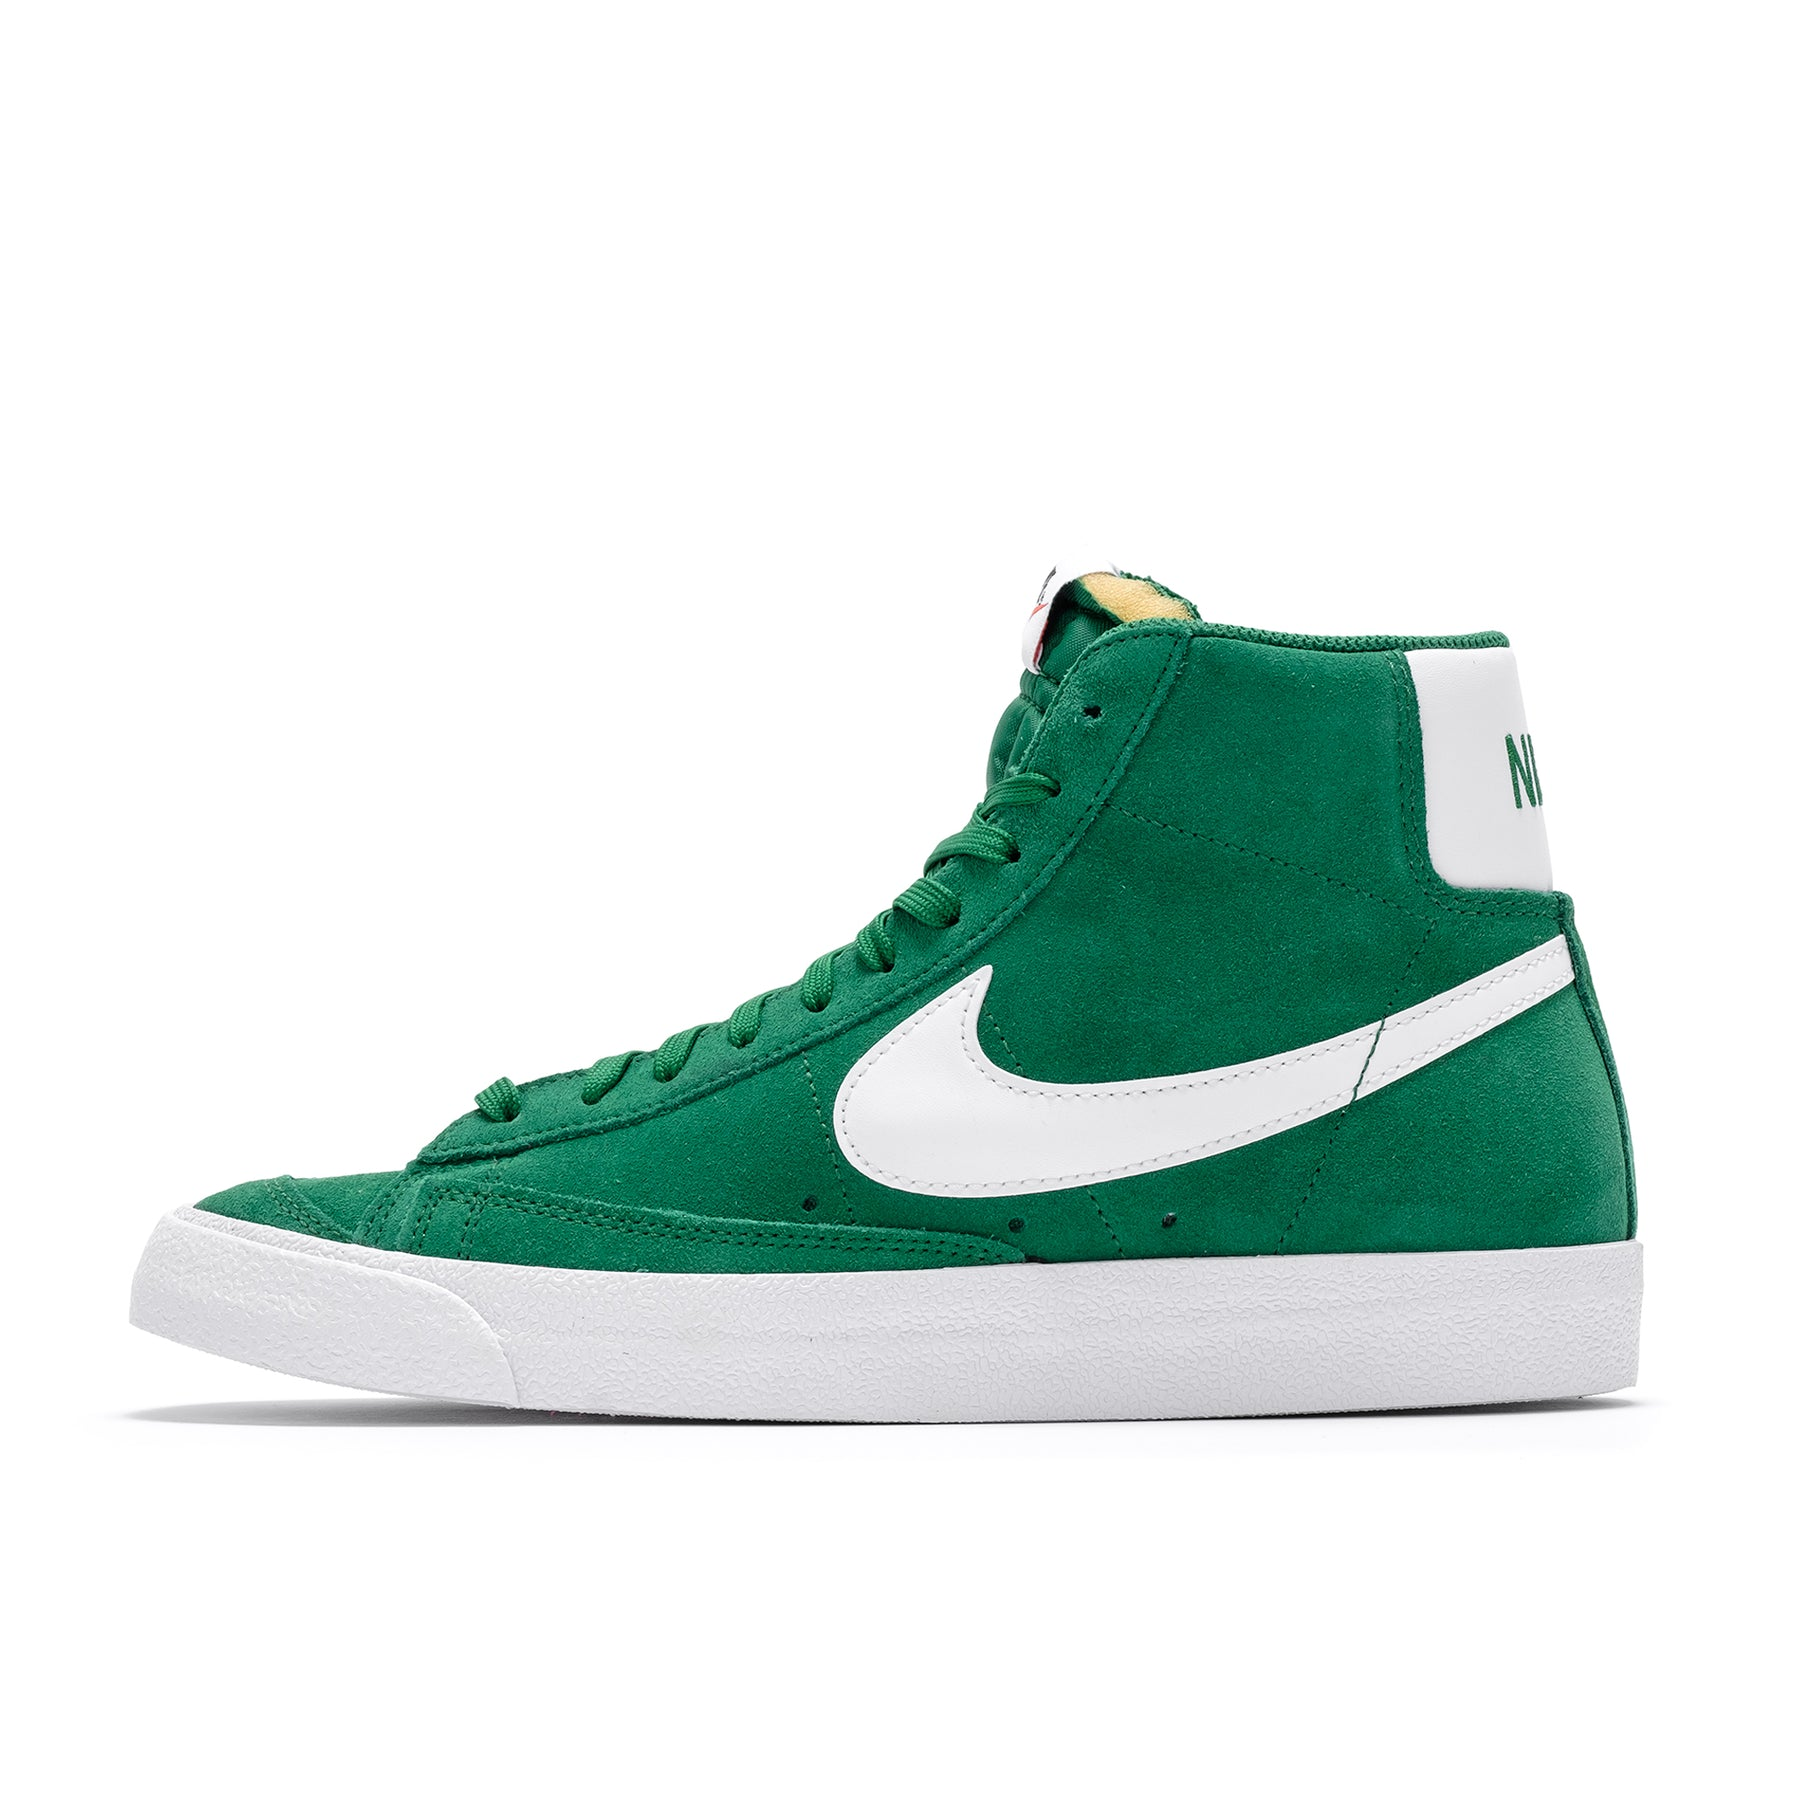 Nike - Blazer Mid '77 Suede Pine Green/White   Off The Hook Montreal